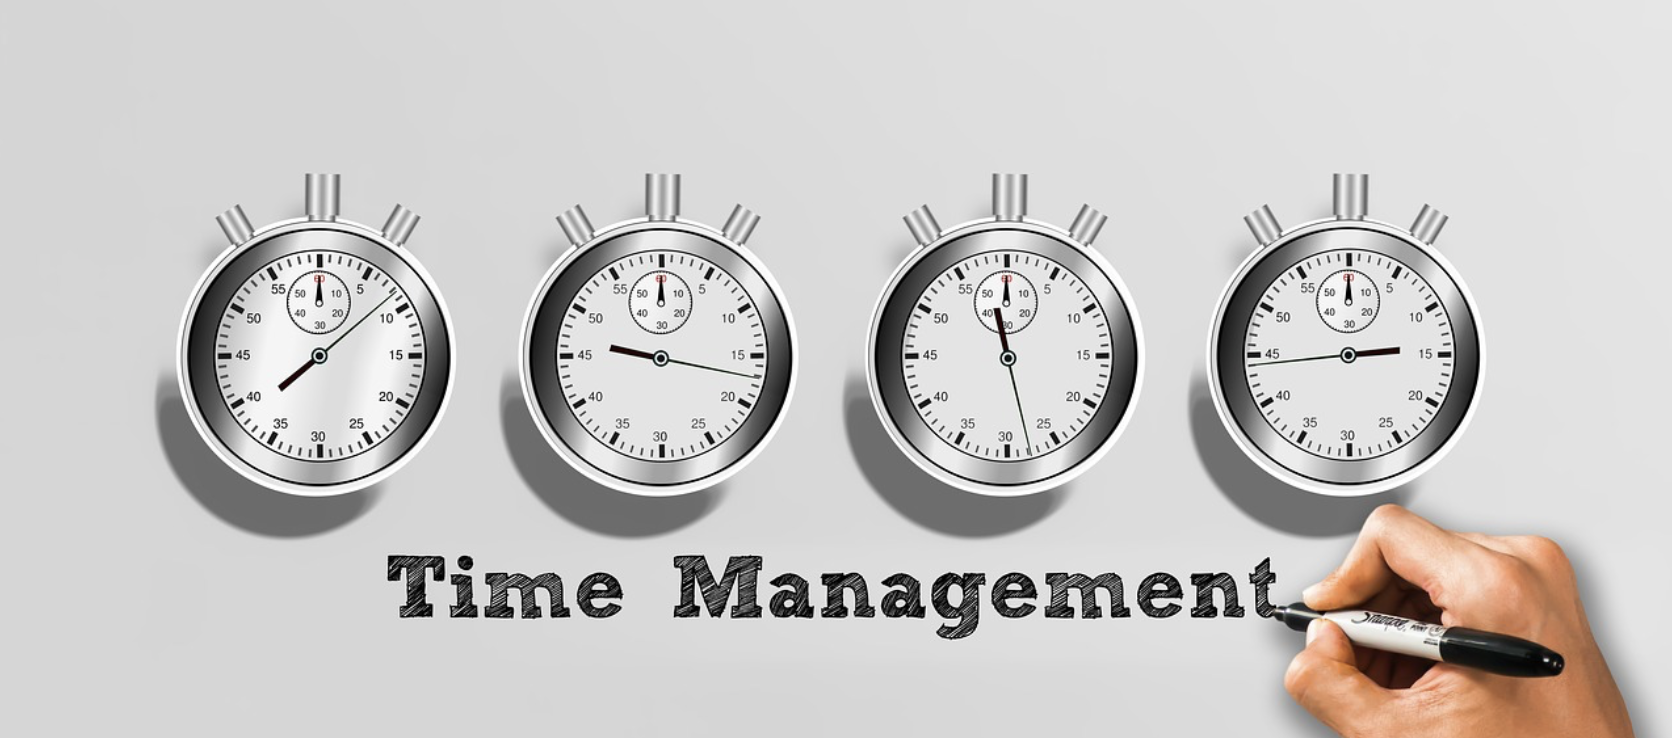 How to manage your time more efficiently?